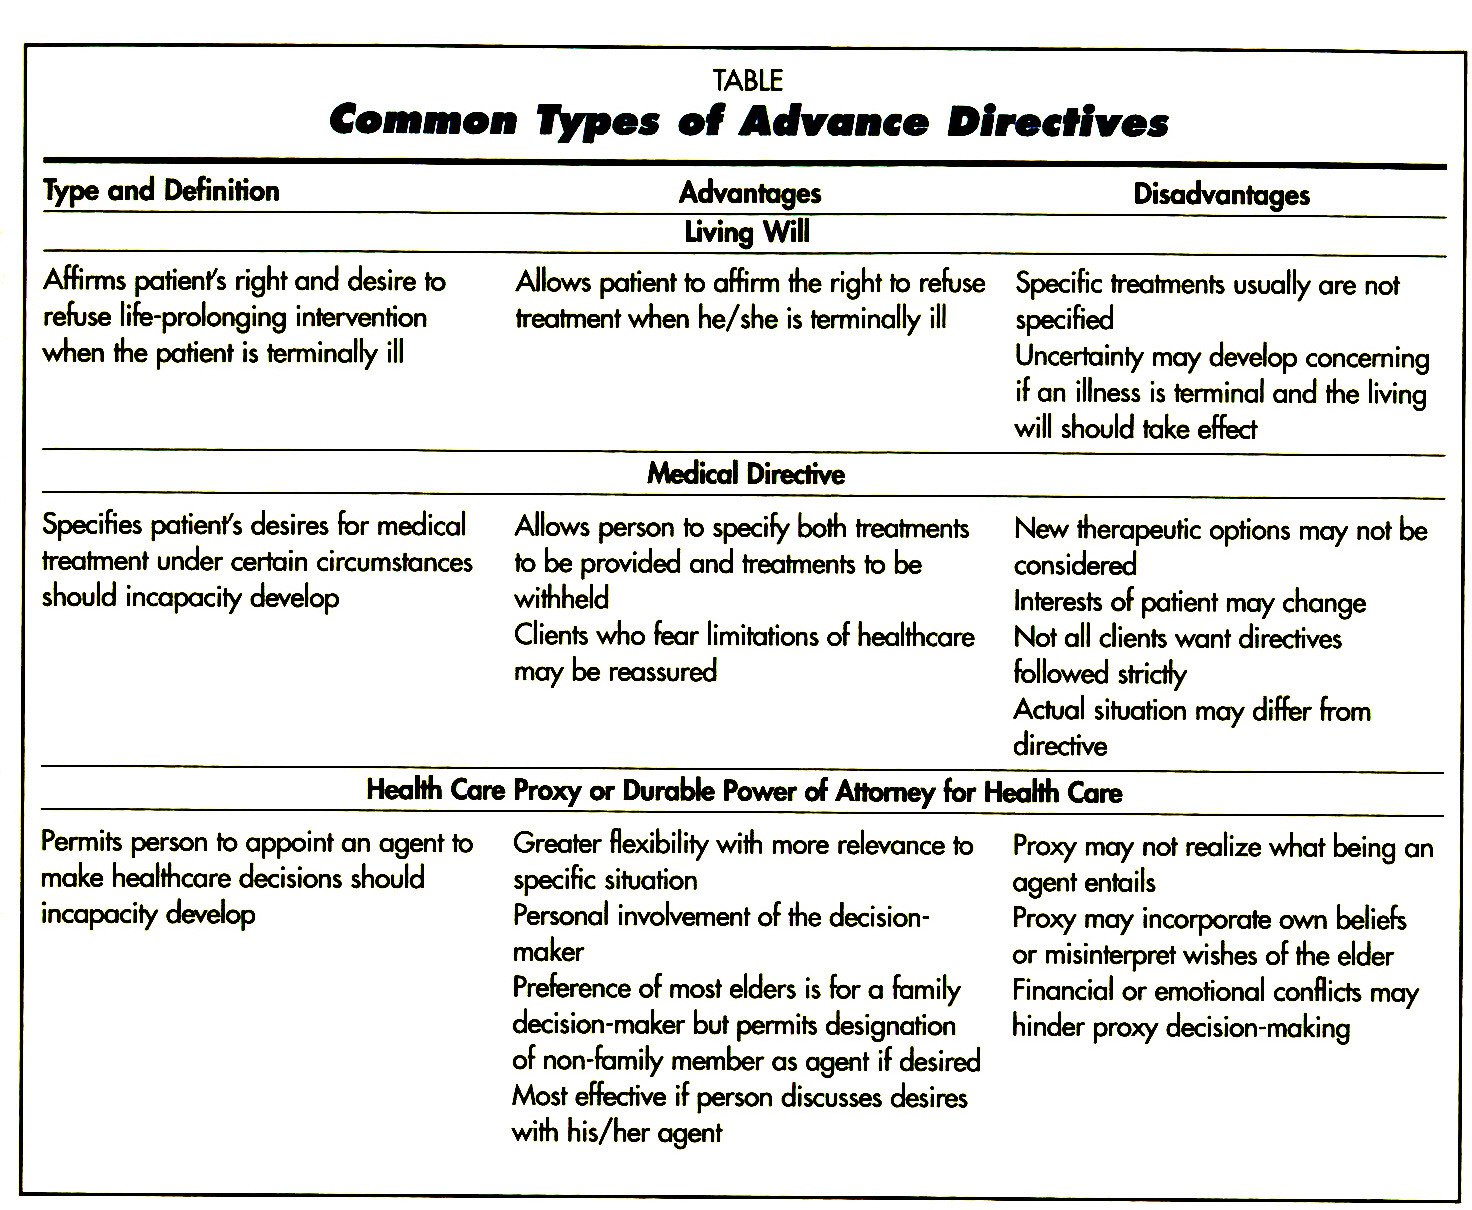 TABLECommon Types of Advance Directives